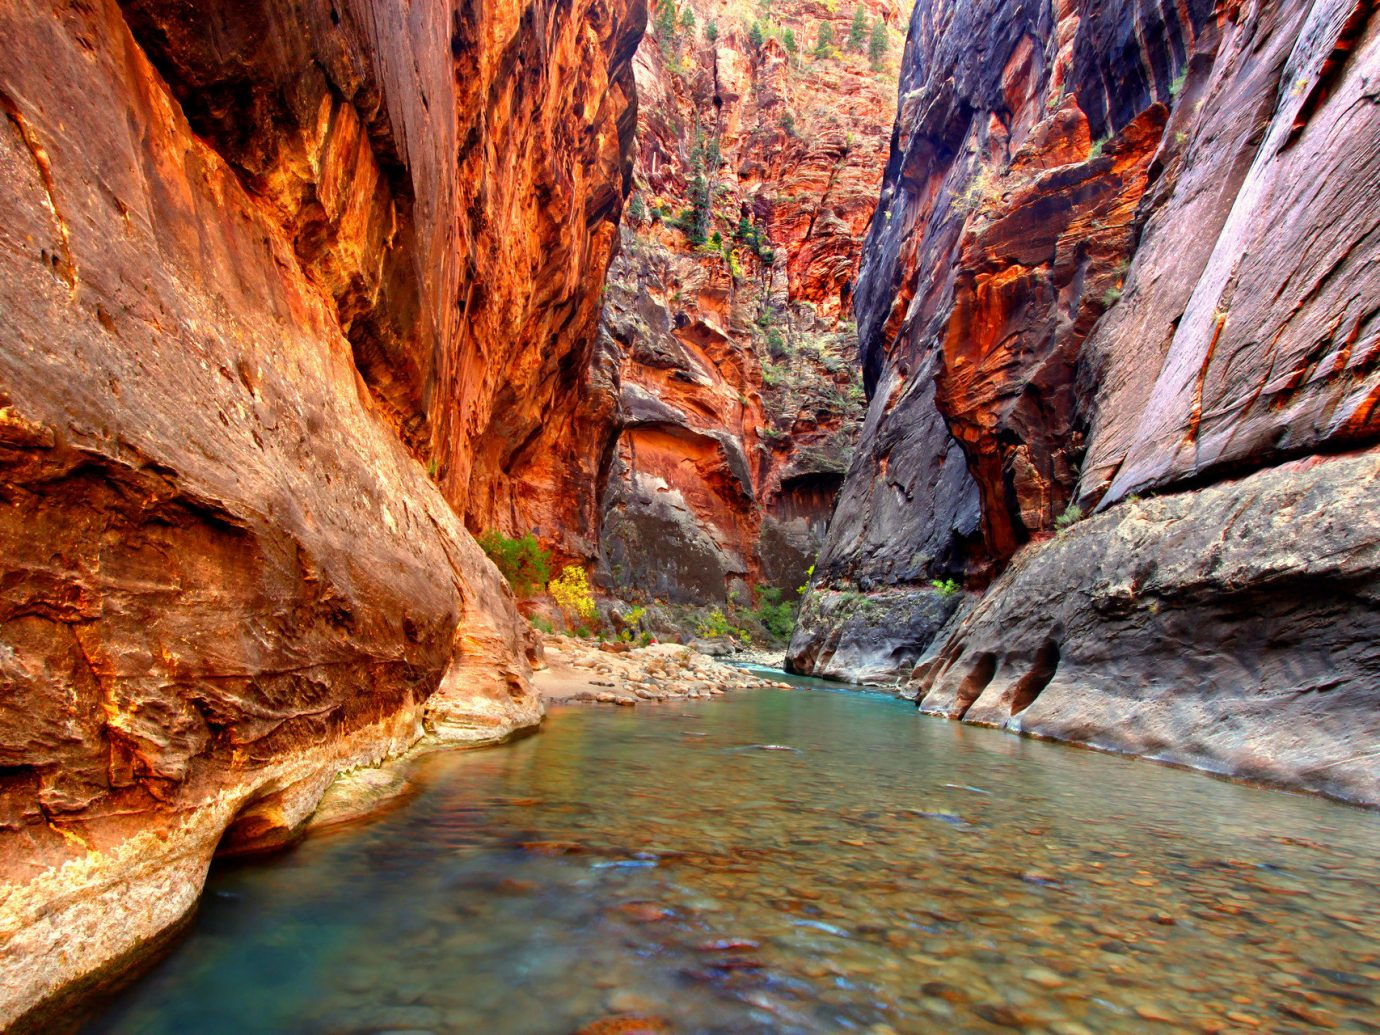 Health + Wellness National Parks Outdoors + Adventure Trip Ideas valley canyon Nature rock geographical feature landform outdoor River mountain wilderness cliff wadi sea cave terrain formation geology autumn Sea